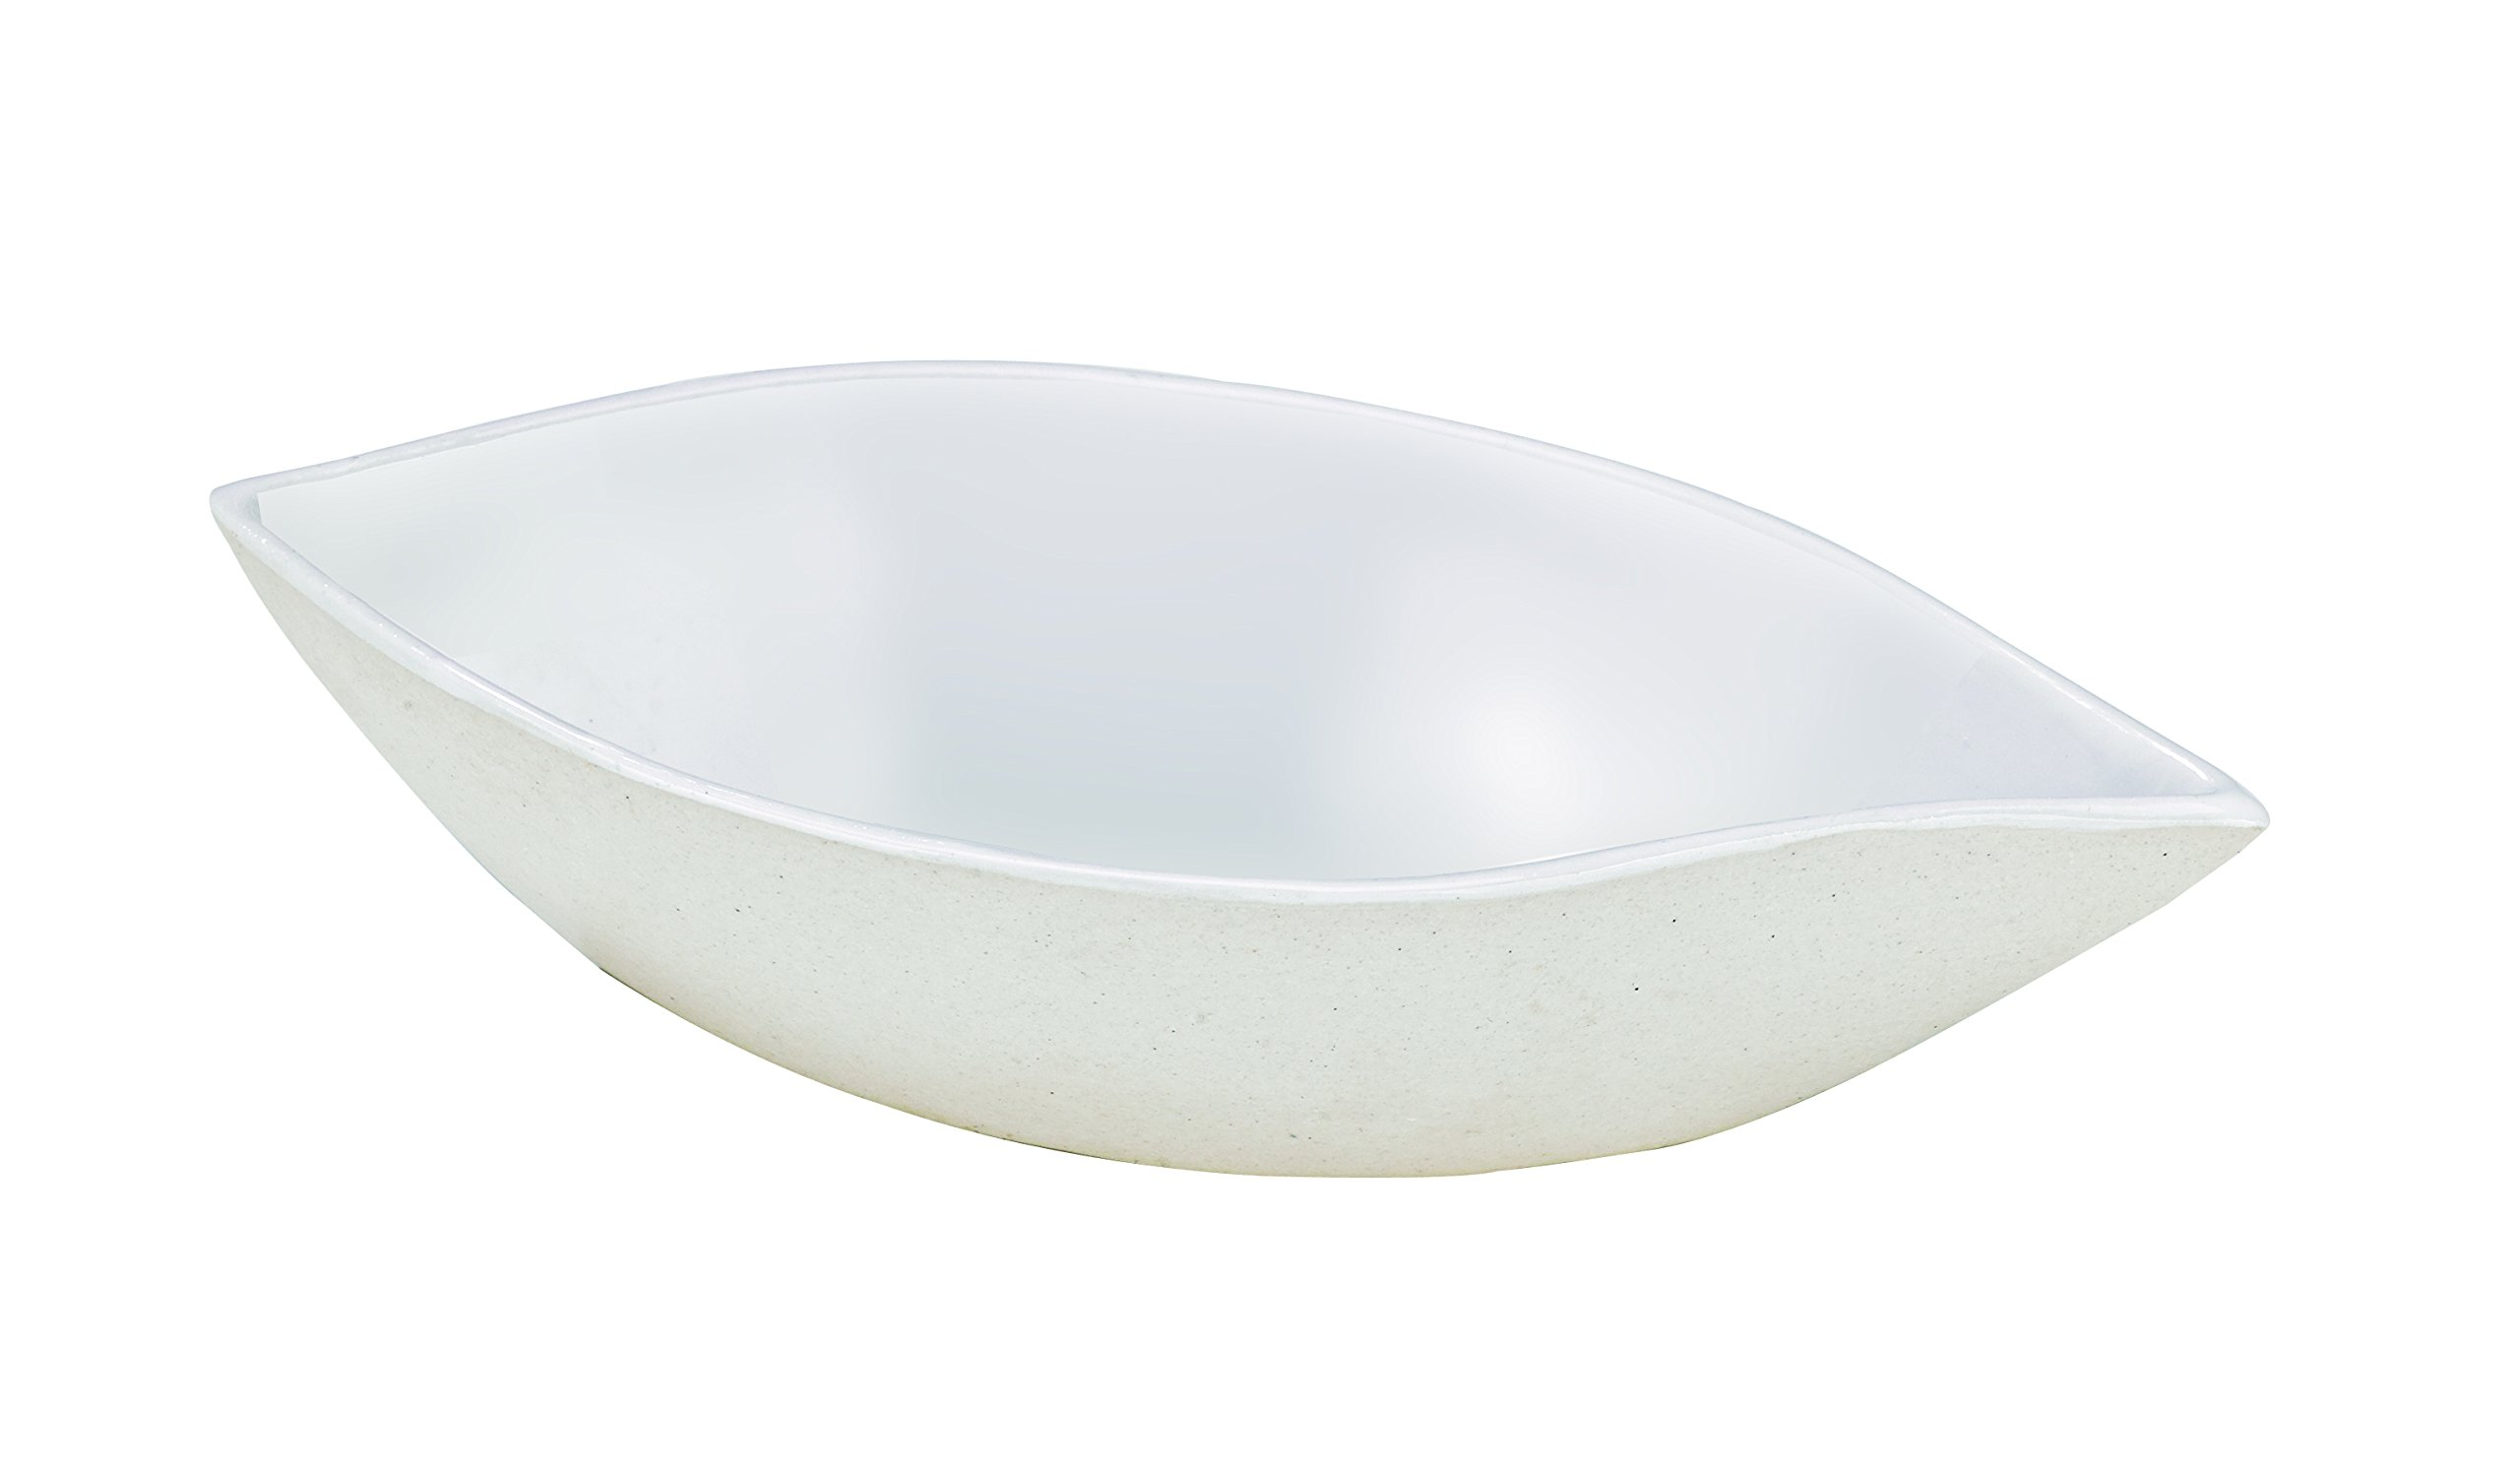 Bio 'n' Chic Drop Shaped Sugarcane Sauce Dish (Case of 300), PacknWood - Small White Paper Dish for Pouring (1.5 oz, 4.3'' x 2'' x 1'') 210BCHICDROP